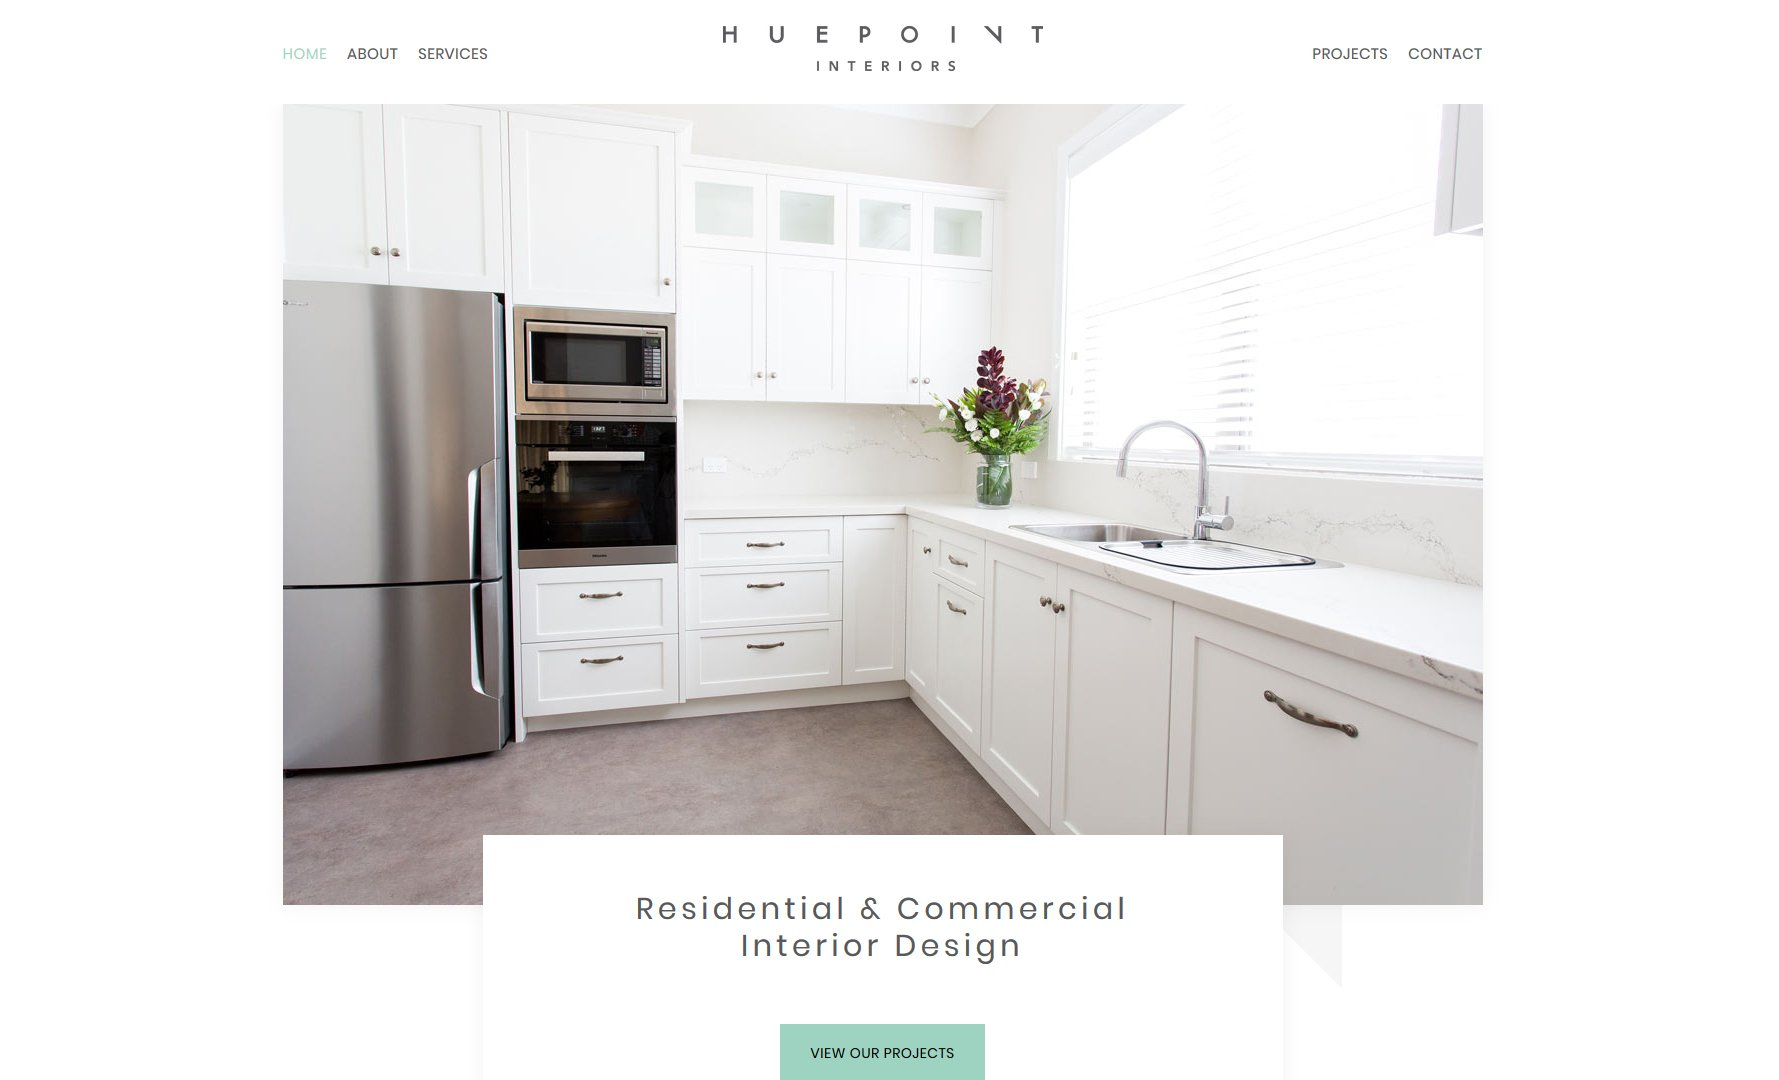 Interior design website designer Newcastle